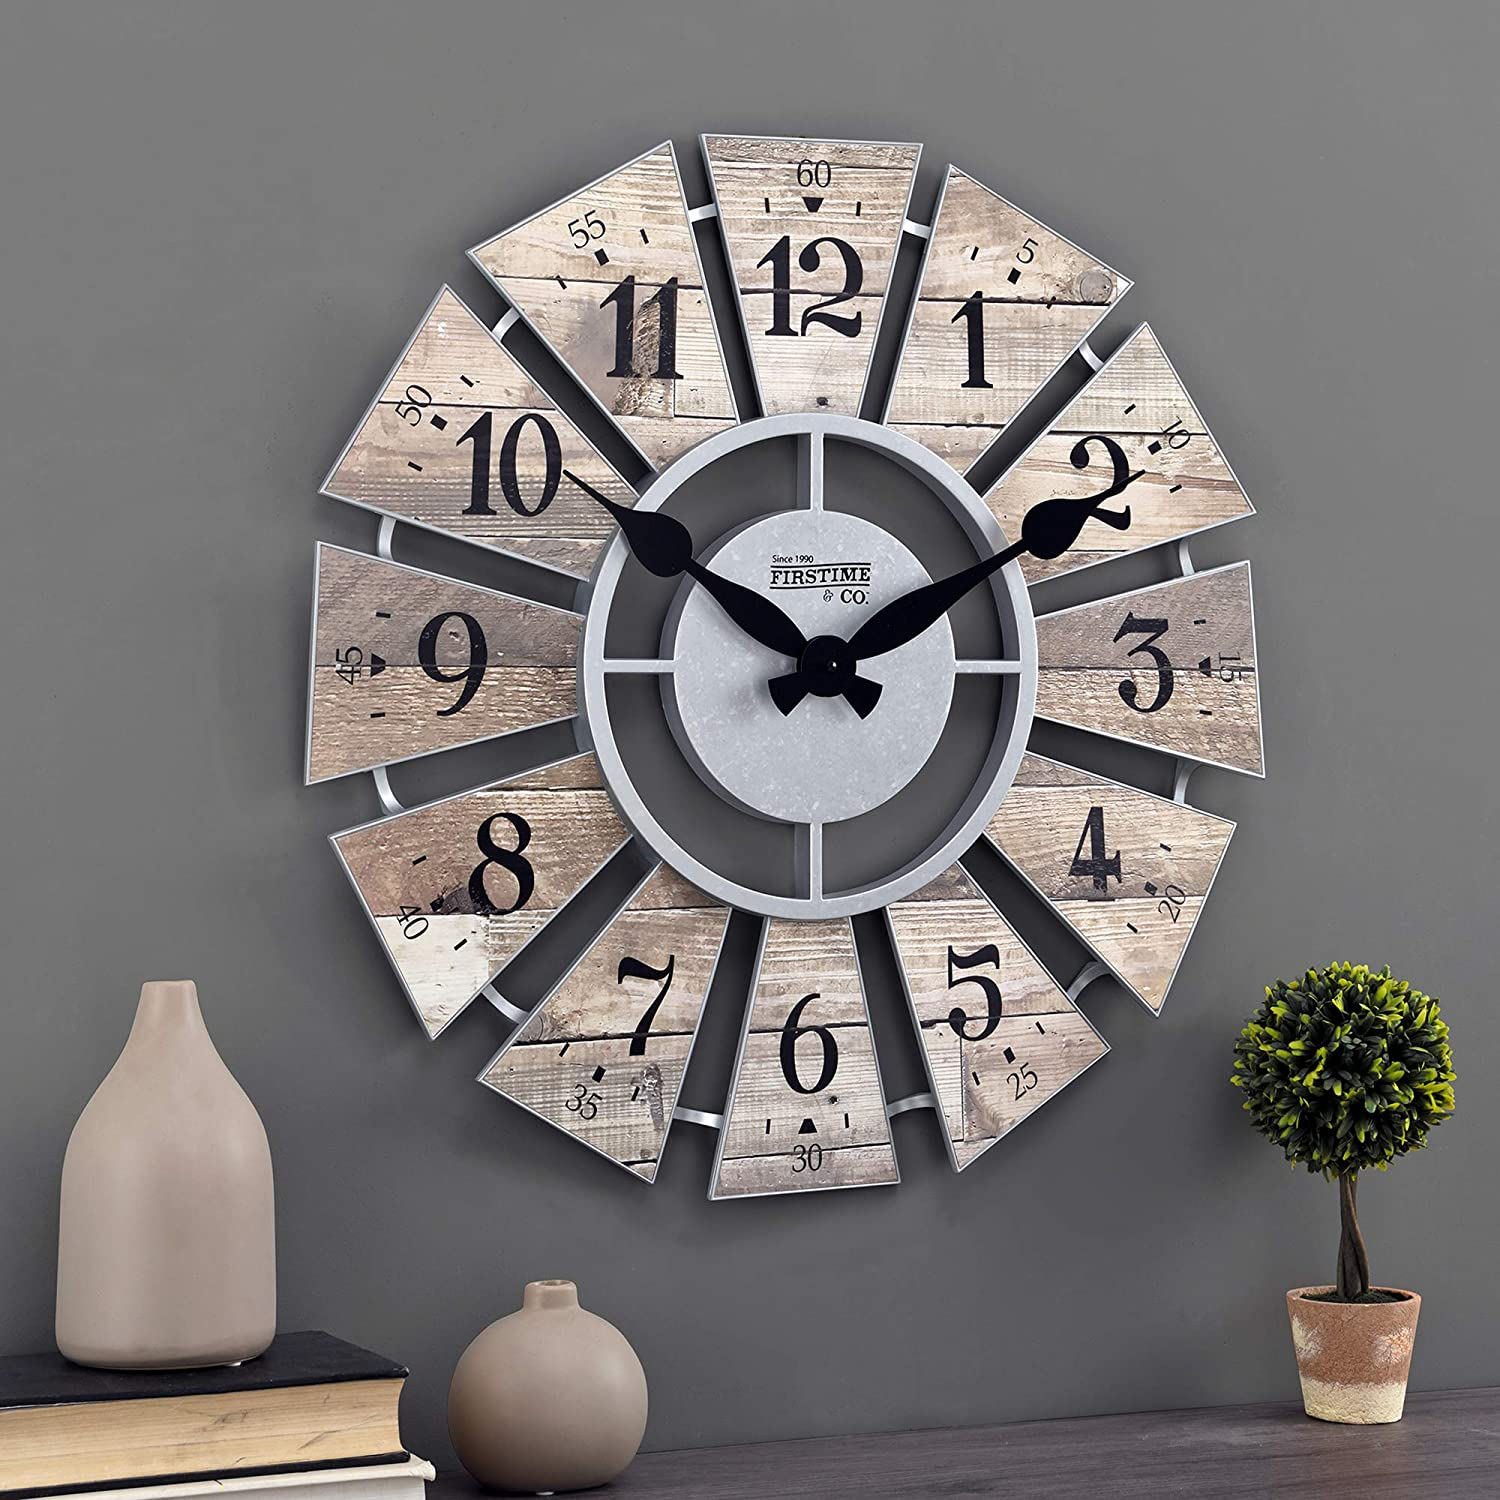 FirsTime & Co. Brown Shiplap Farmhouse Windmill Clock, American Designed, Brown, 24 x 2 x 24 inches